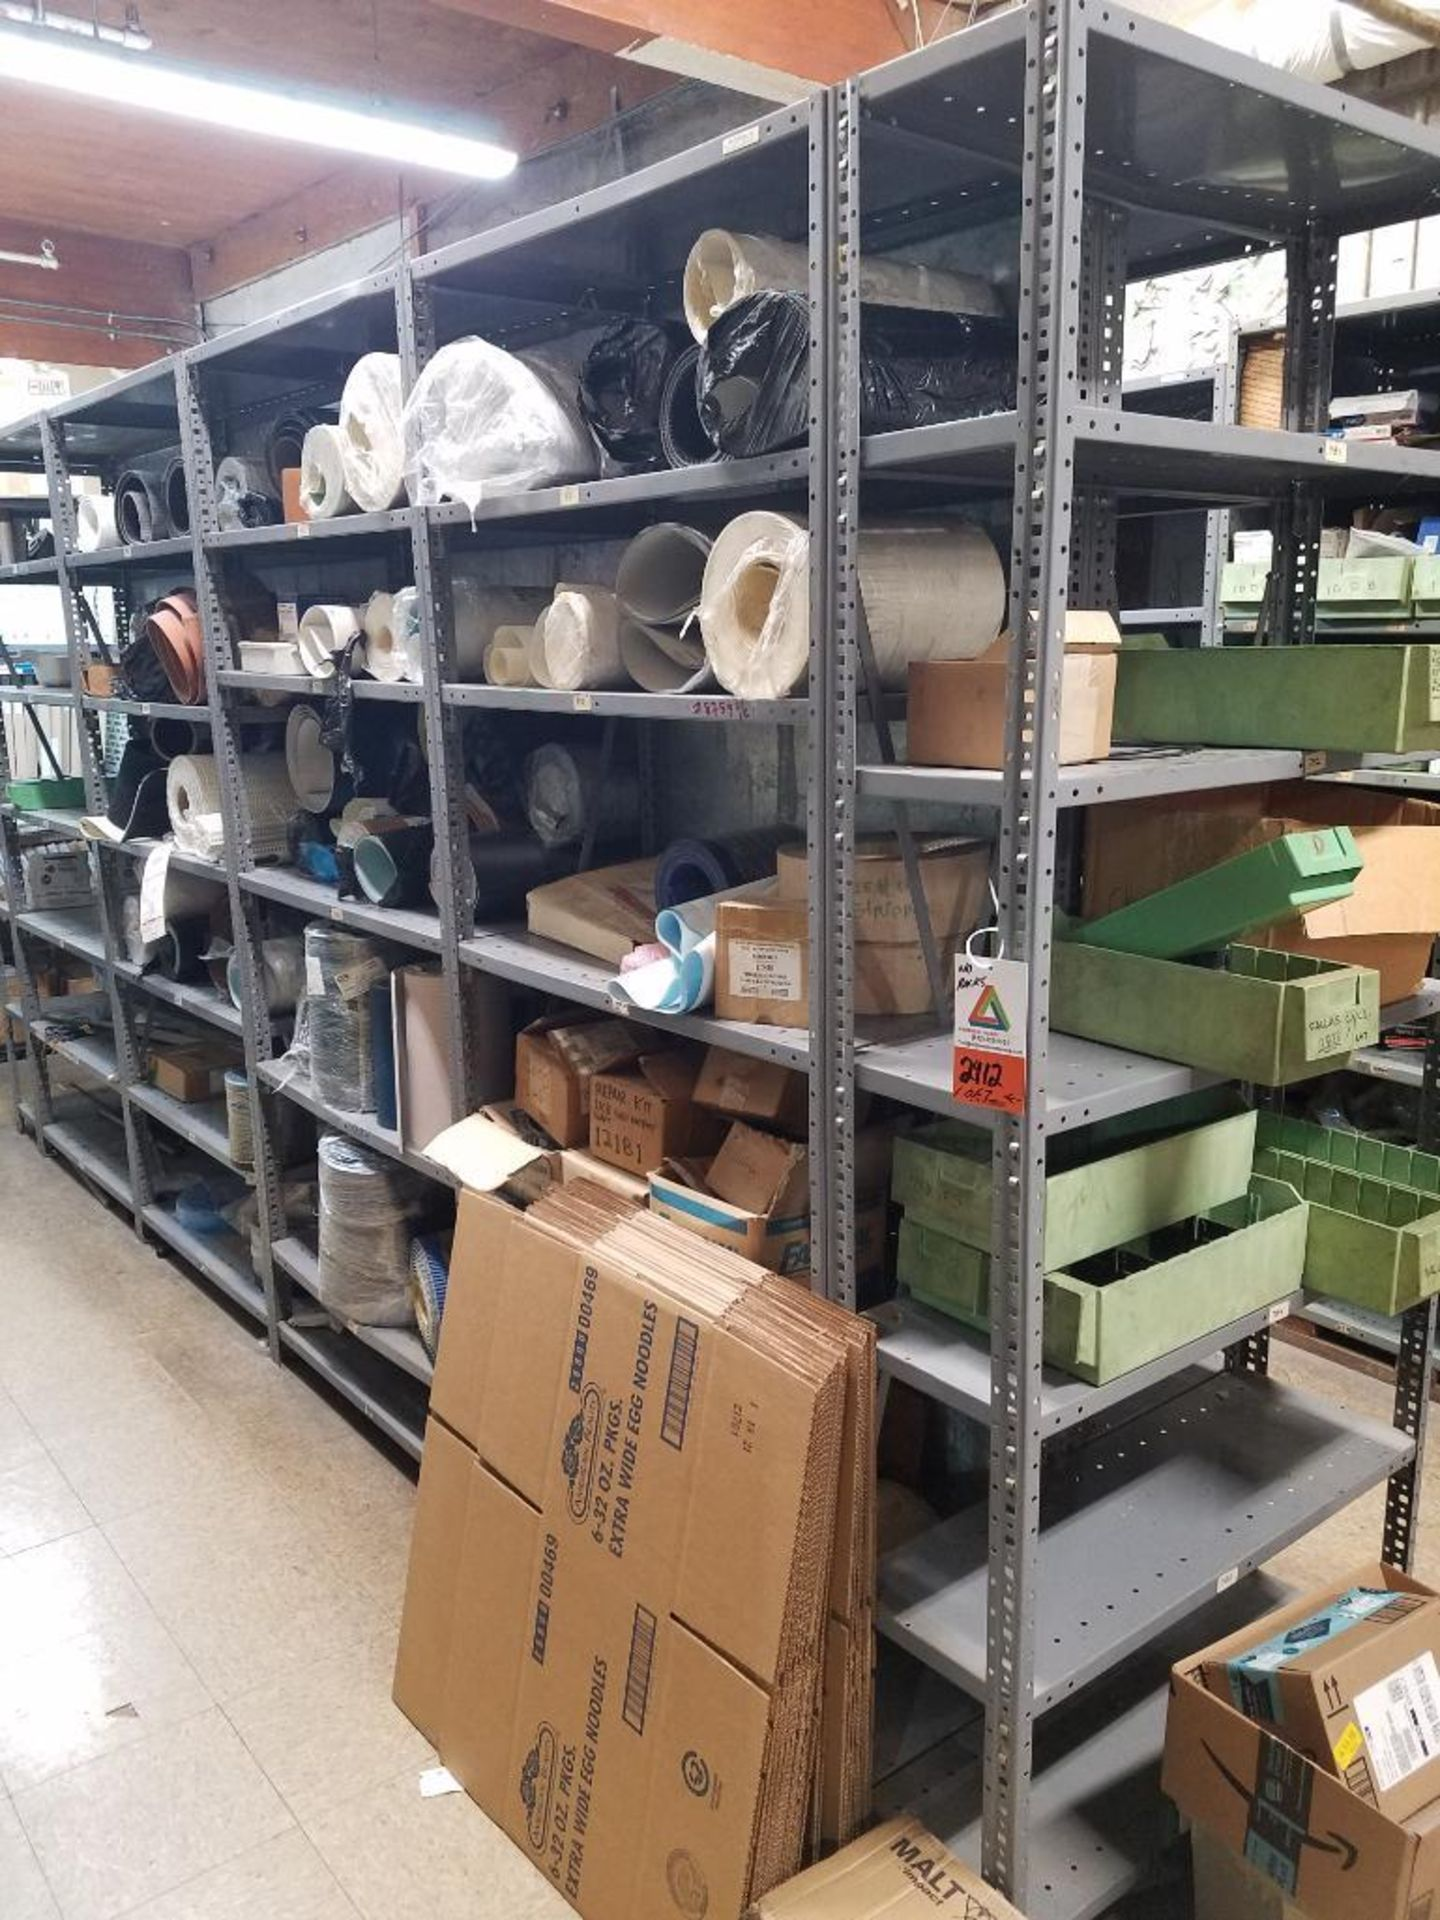 various conveyor belts, and replacement parts - Image 2 of 8